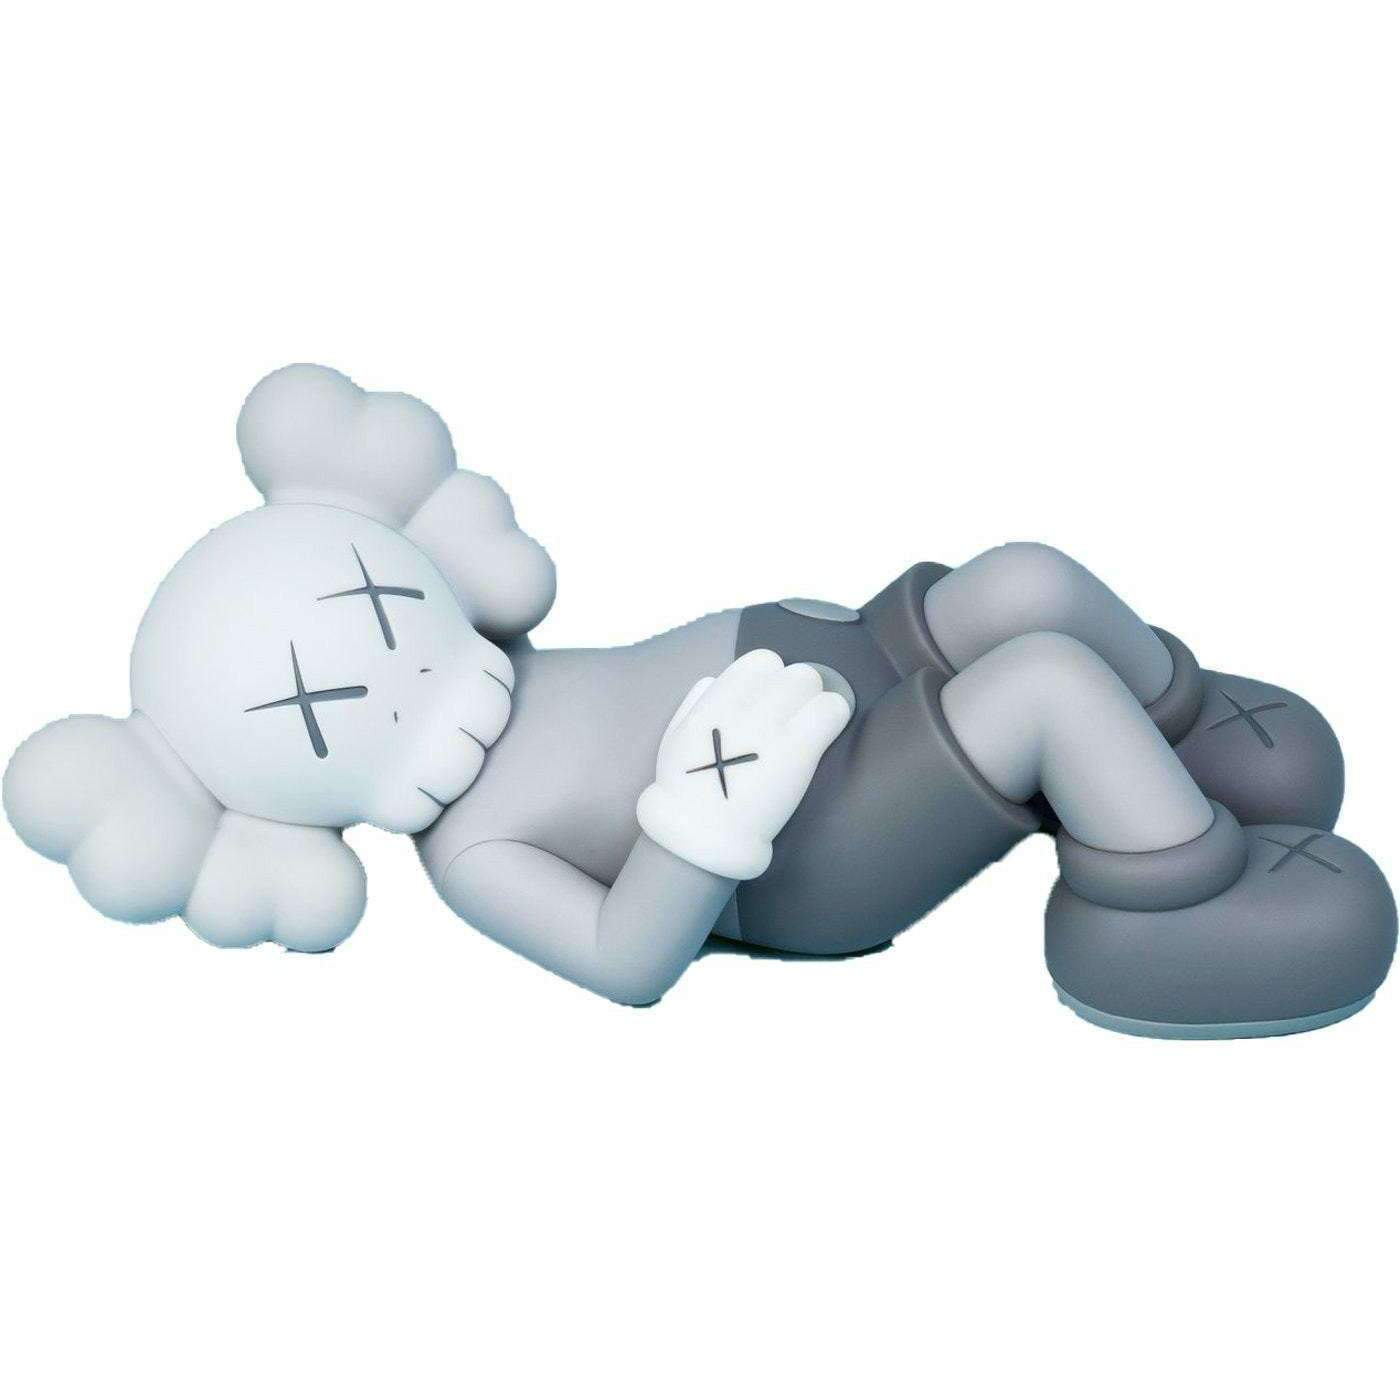 "KAWS, Holiday Japan 9.5"" Vinyl Figure (Grey), 2019 